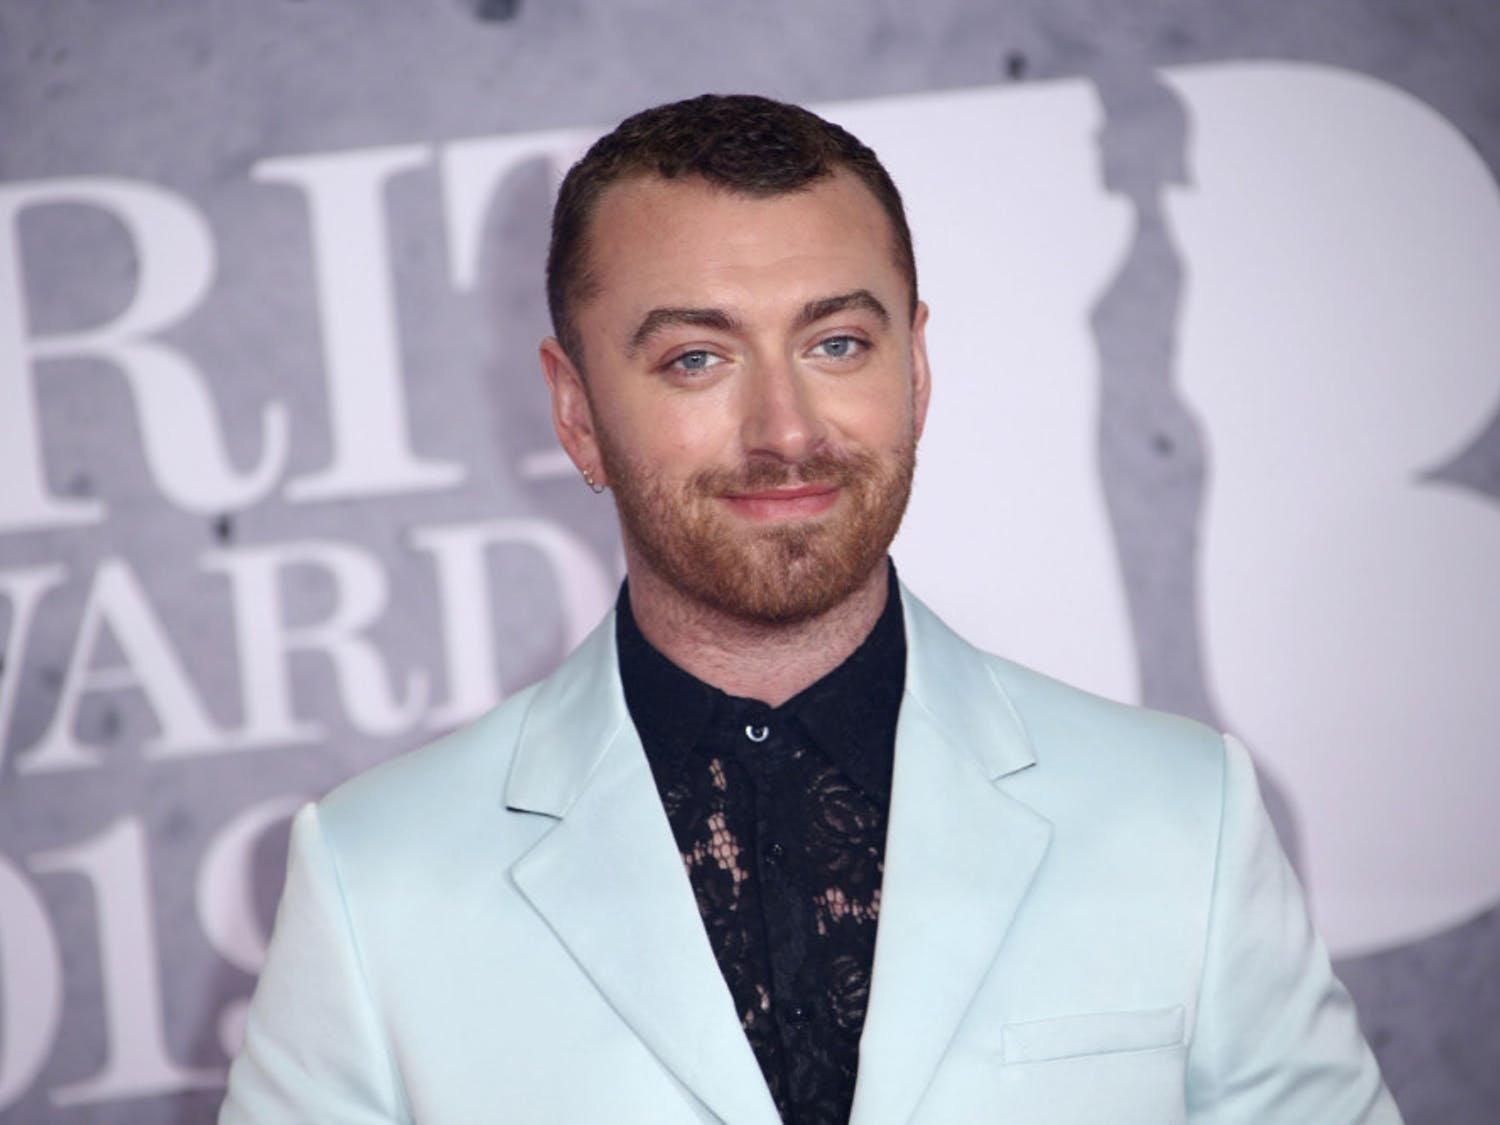 """This Feb. 20, 2019, file photo shows singer Sam Smith posing for photographers upon arrival at the Brit Awards in London. The Oscar-winning pop star has declared his pronouns """"they/them"""" on social media after coming out as non-binary in his """"lifetime of being at war with my gender."""" The English """"Too Good at Goodbyes"""" singer said Friday, Sept. 13, 2019, he's decided to """"embrace myself for who I am, inside and out ..."""" (Photo by Joel C Ryan/Invision/AP, File)"""